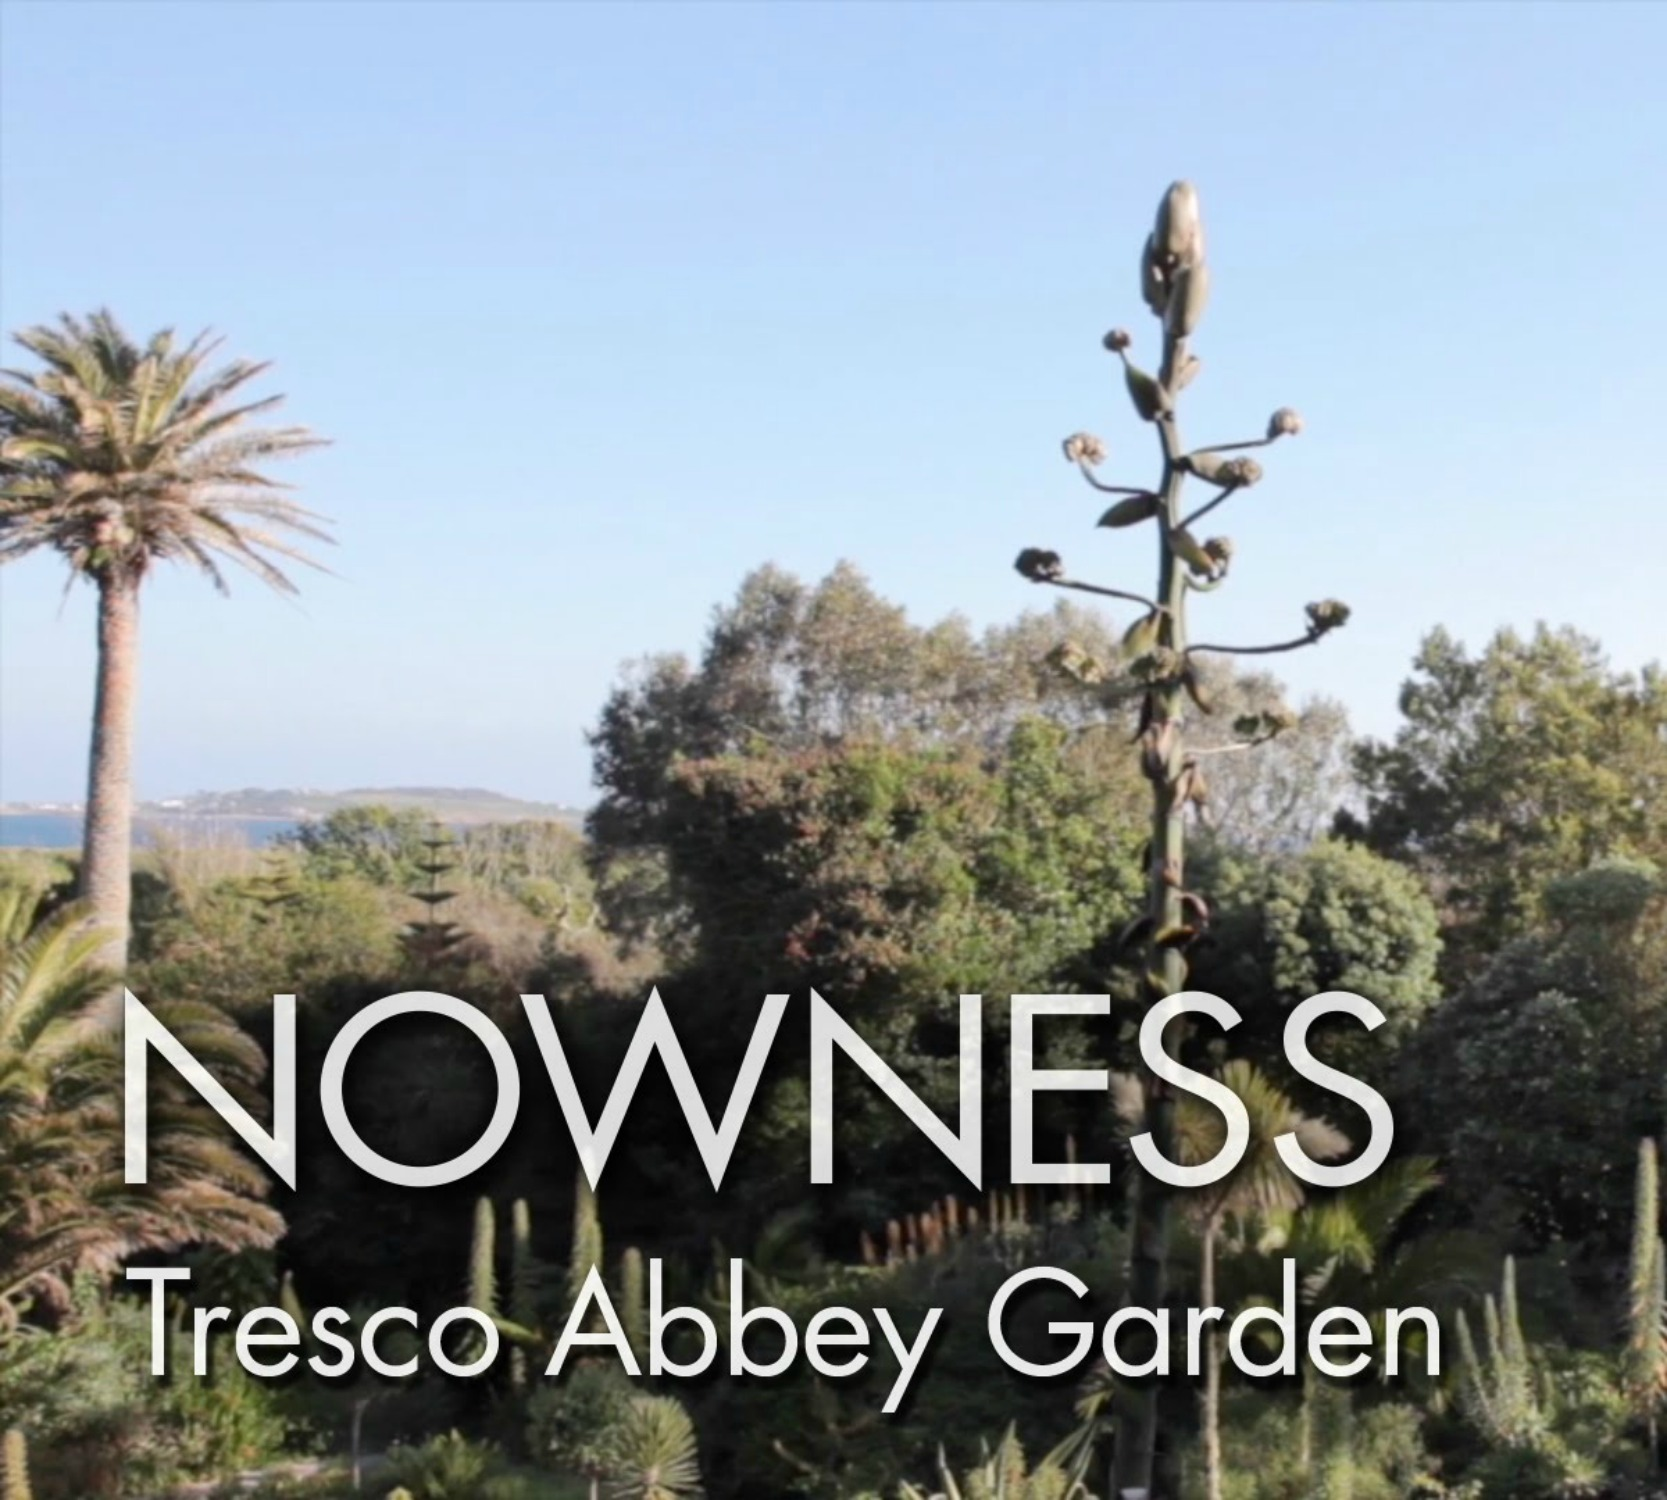 """Tresco Abbey Garden"" by Howard Sooley"